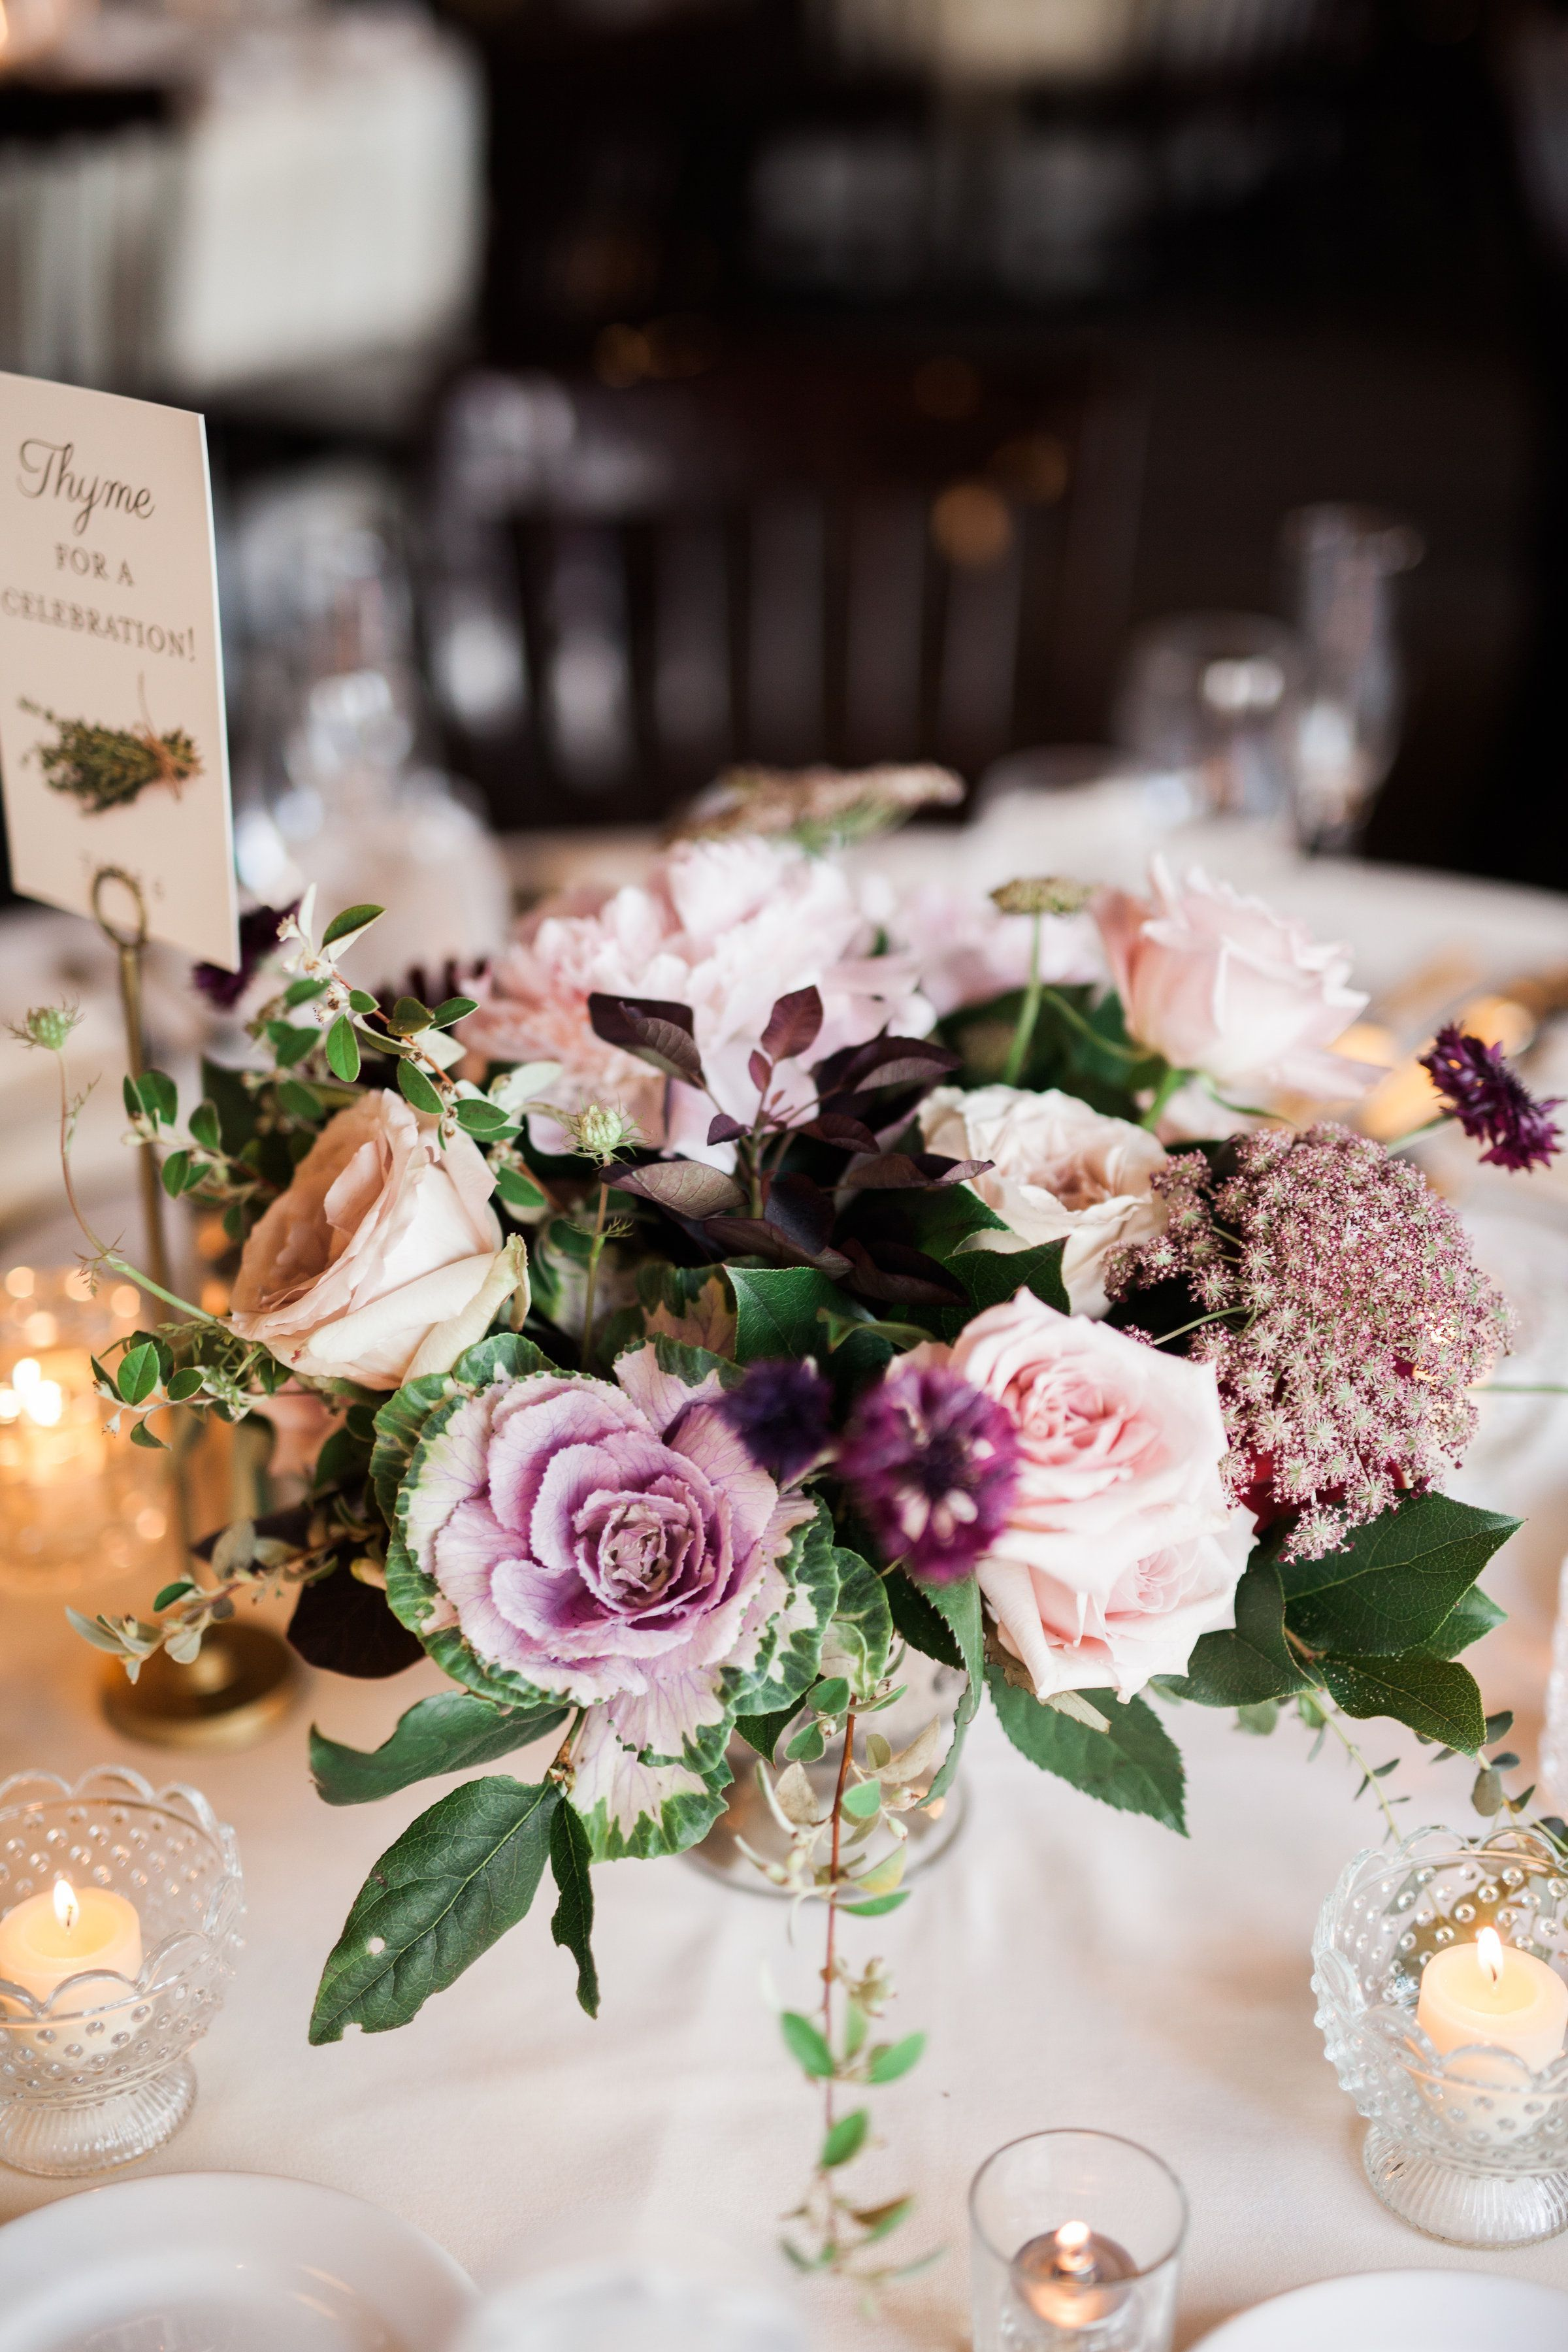 Spring Wedding Centerpiece In Eggplant Taupe And Blush At River